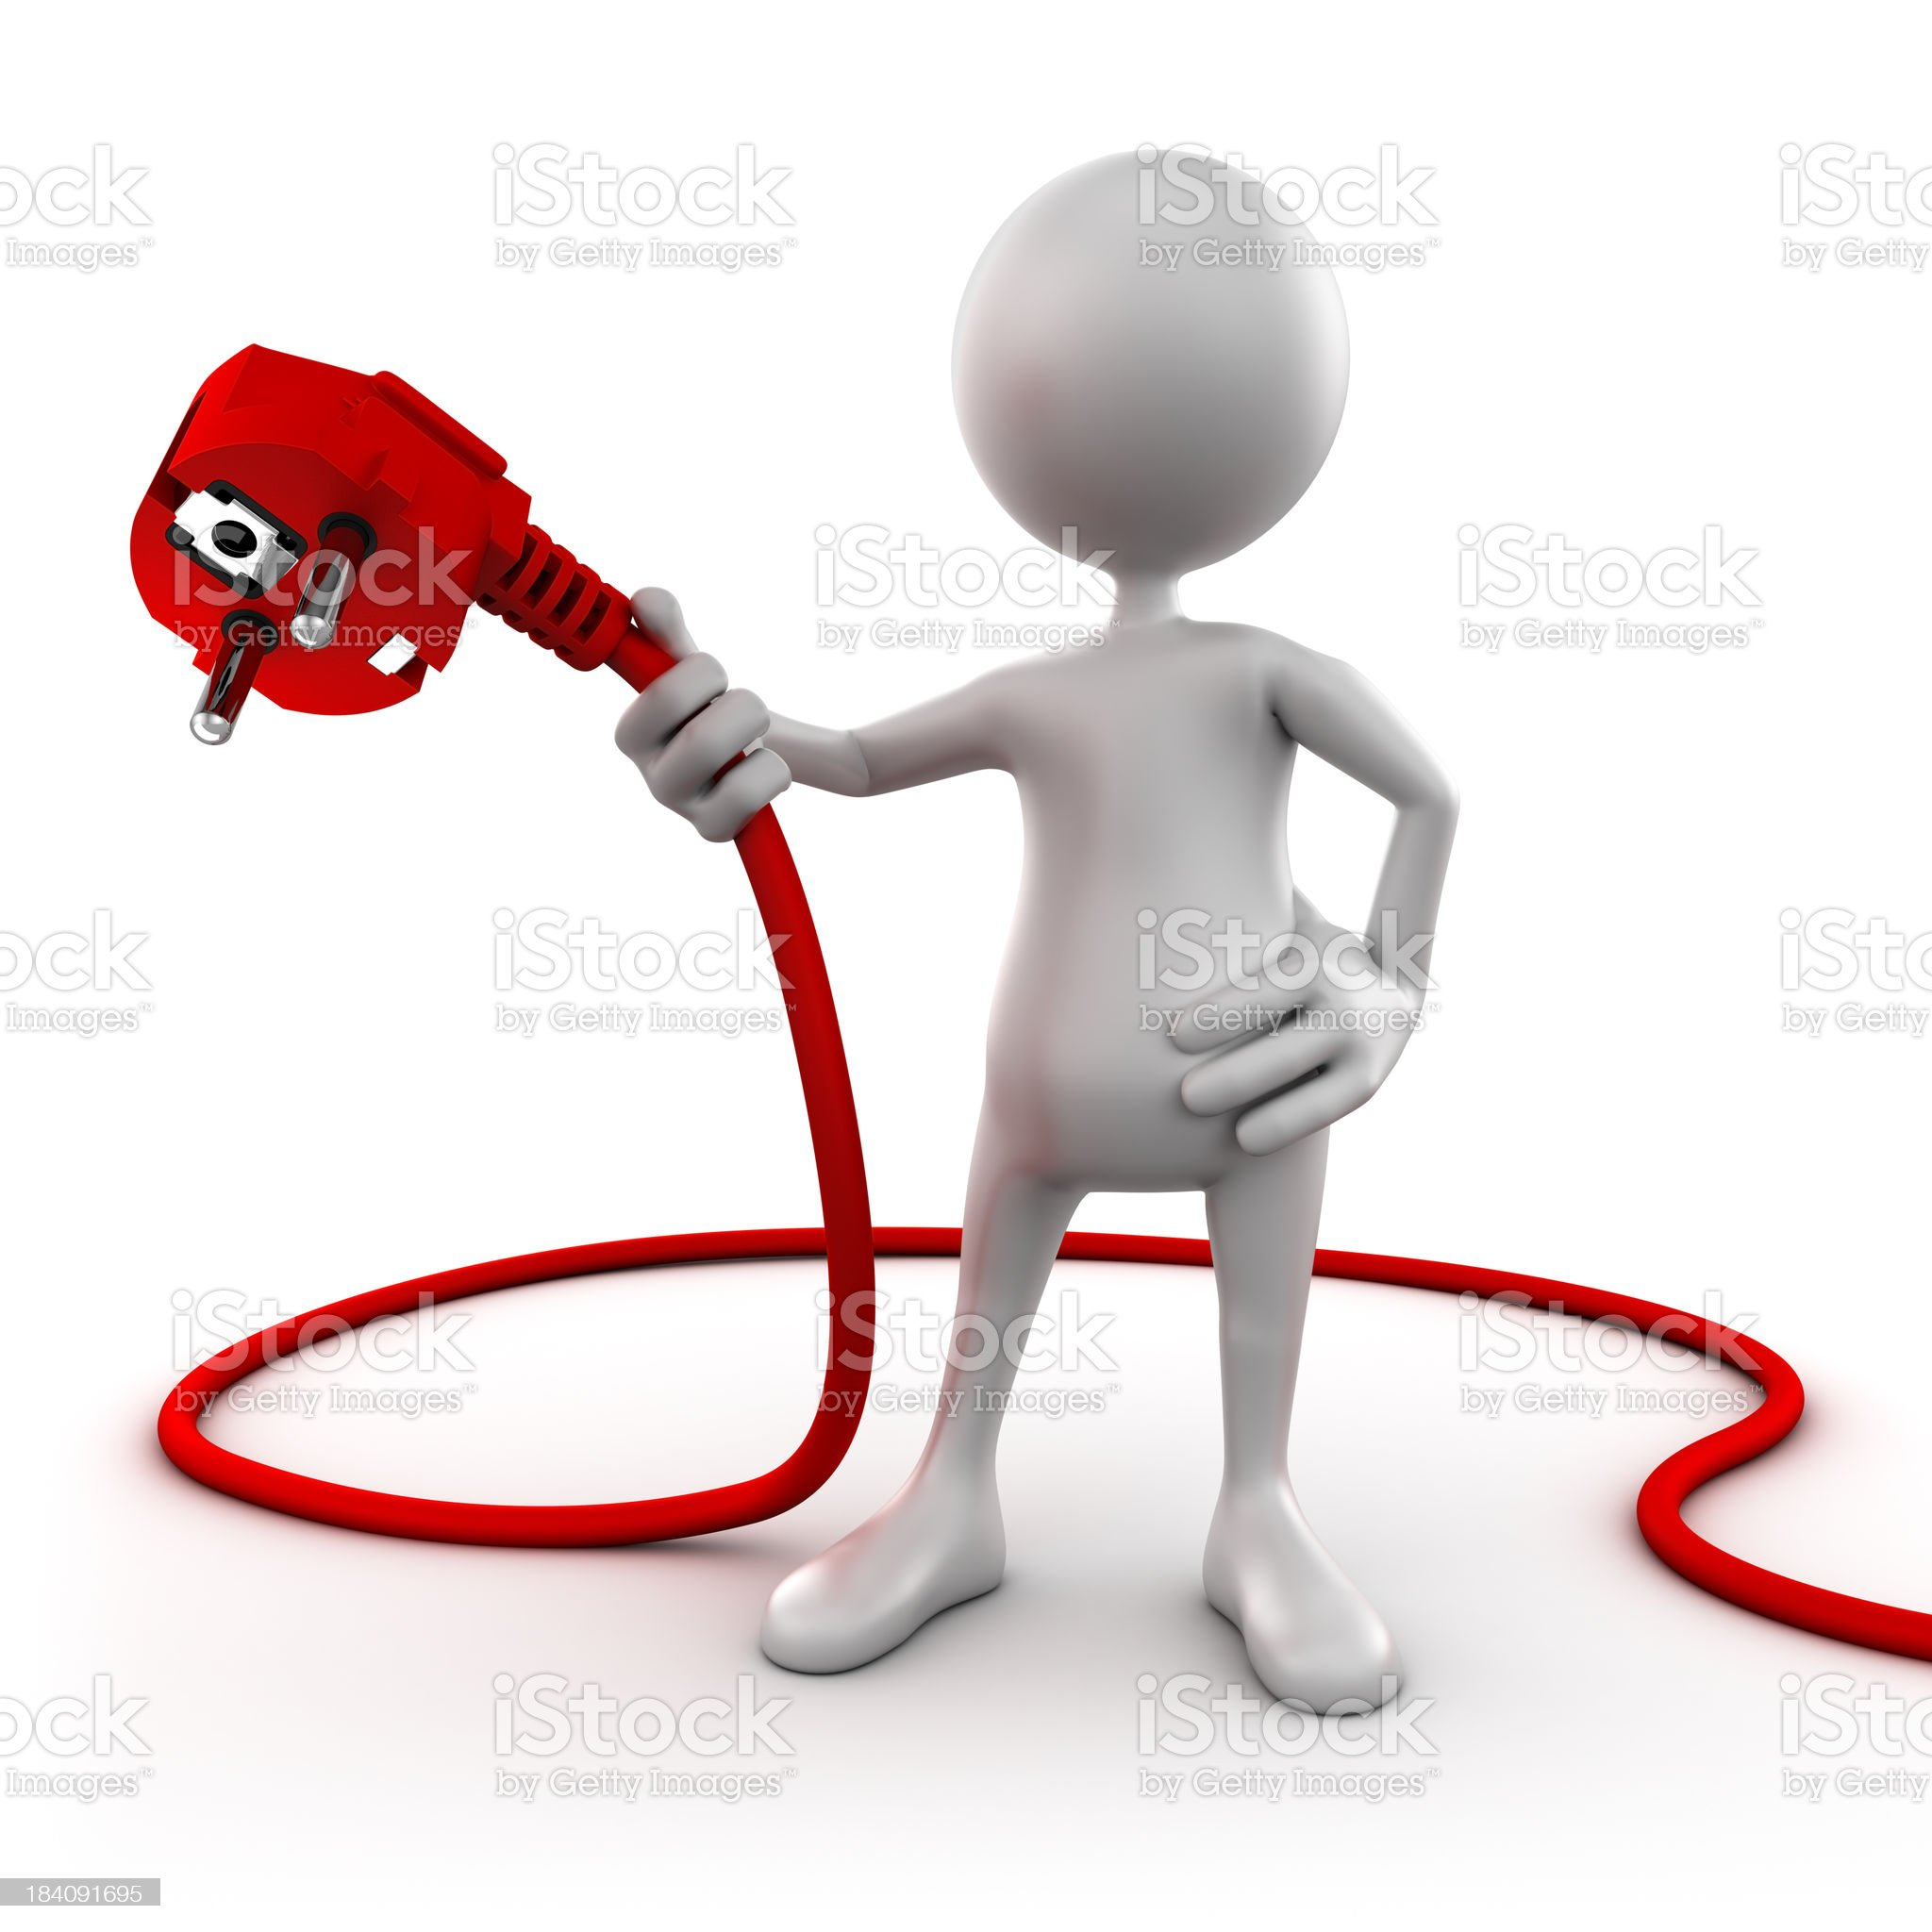 3d man holding Power cable - isolated with clipping path royalty-free stock photo